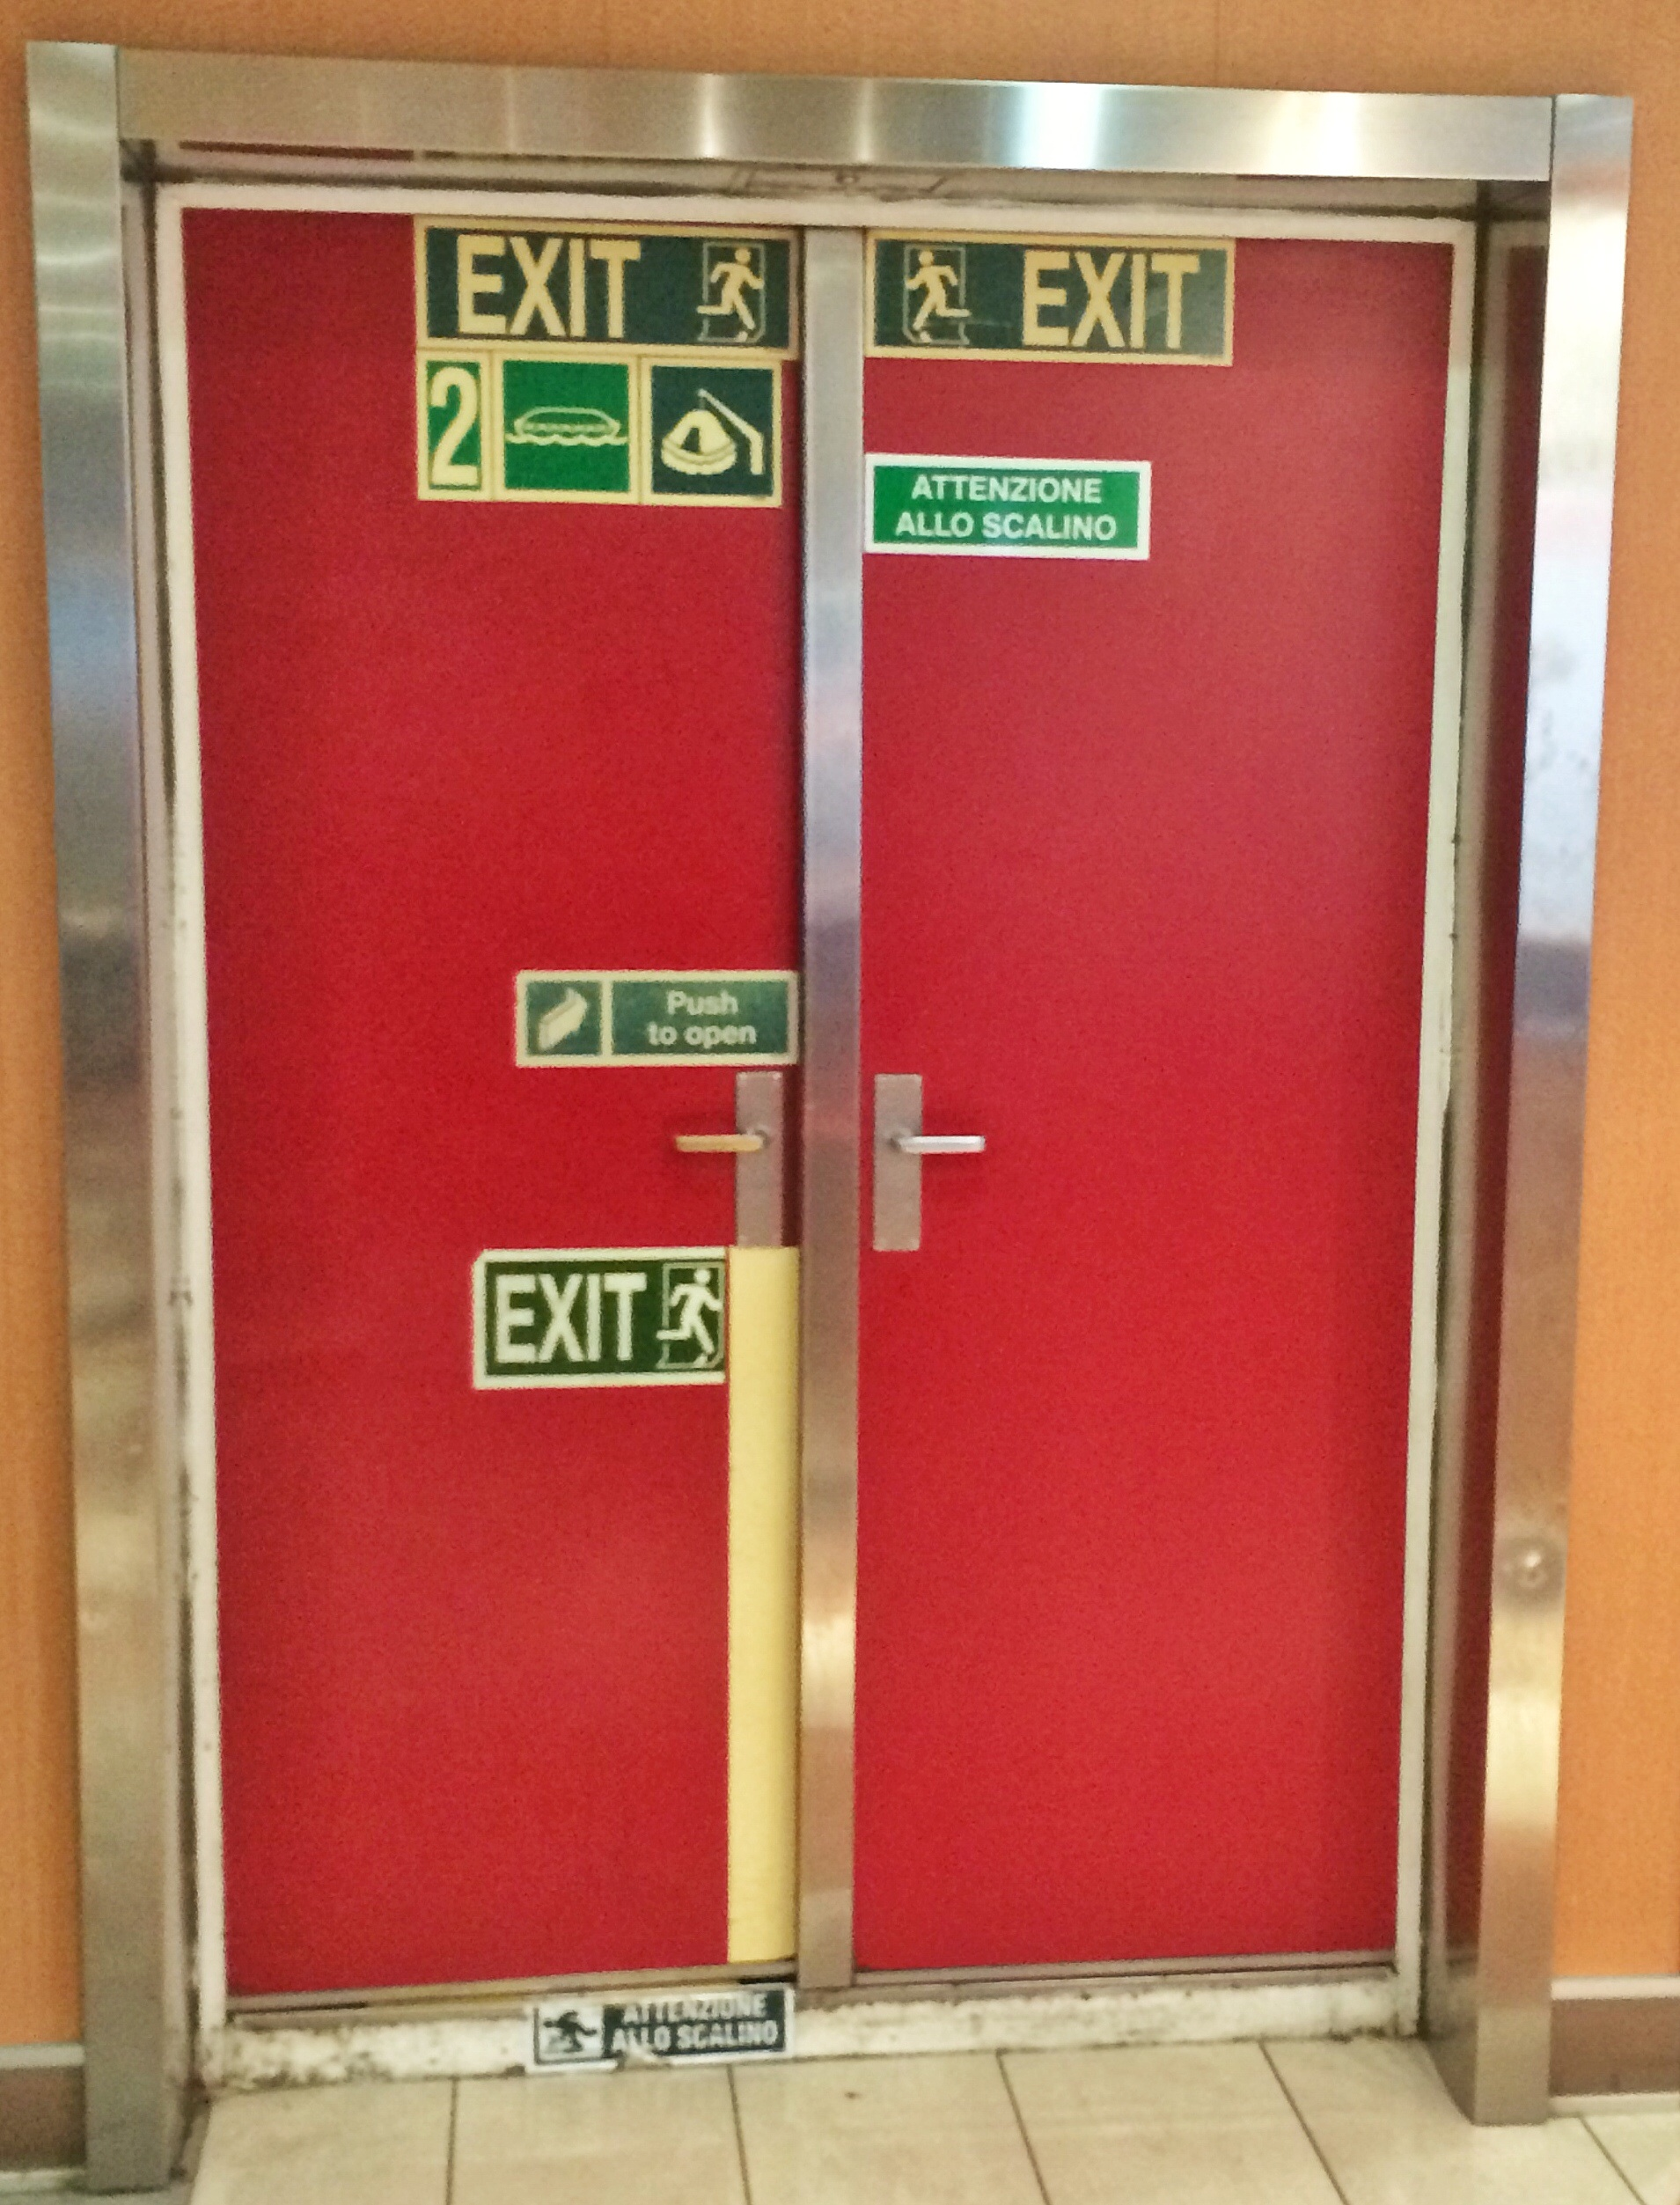 I'm not entirely sure about the purpose of this door. Is it possibly an exit? It needs another sign to make it clear.